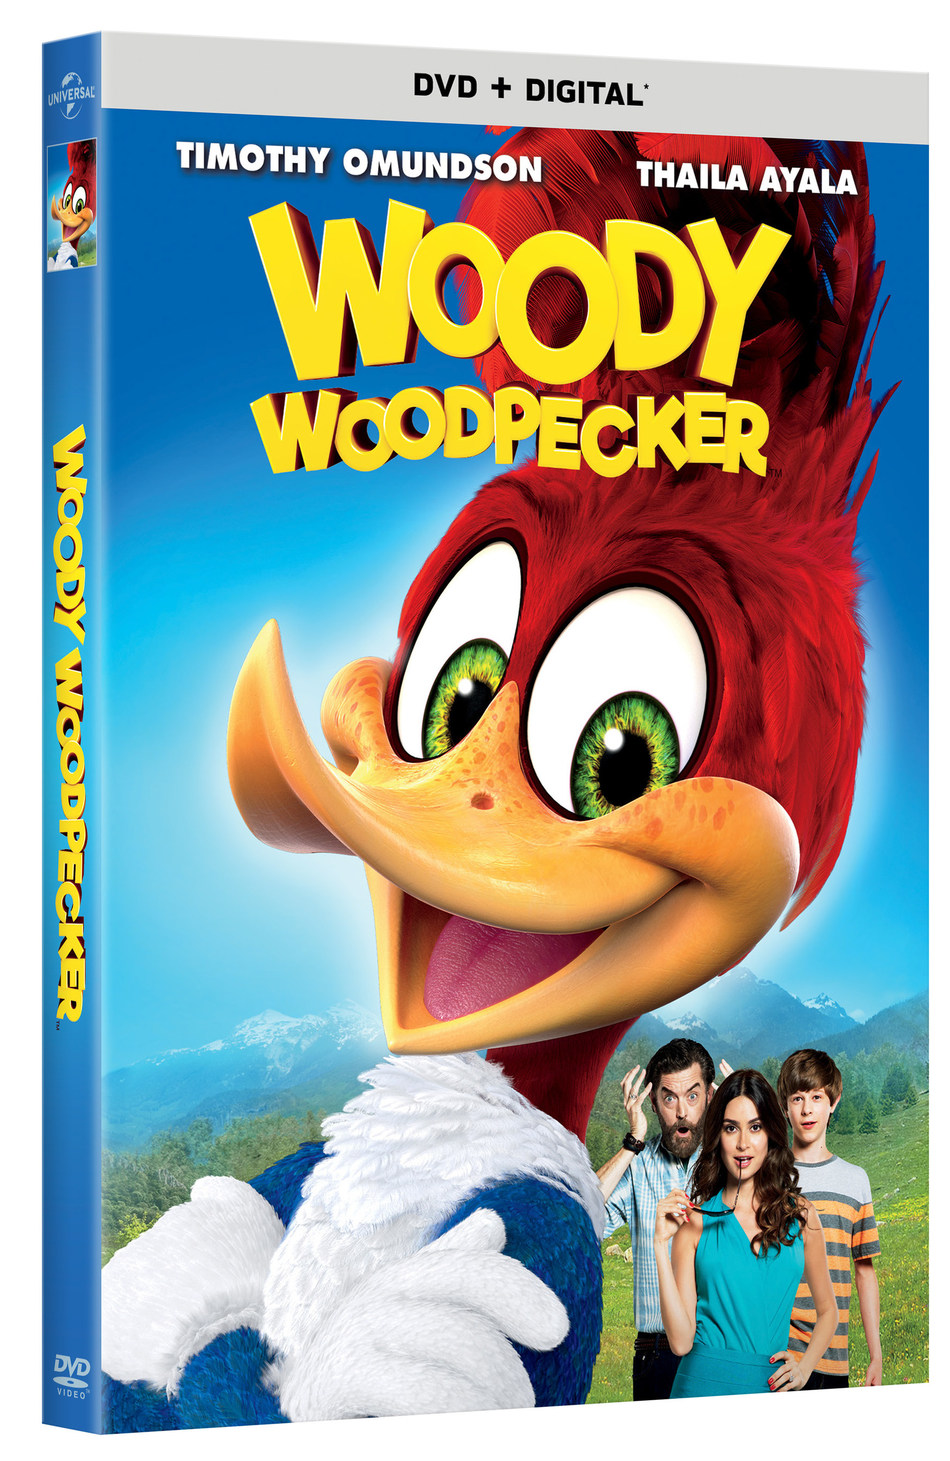 From Universal Pictures Home Entertainment: Woody Woodpecker